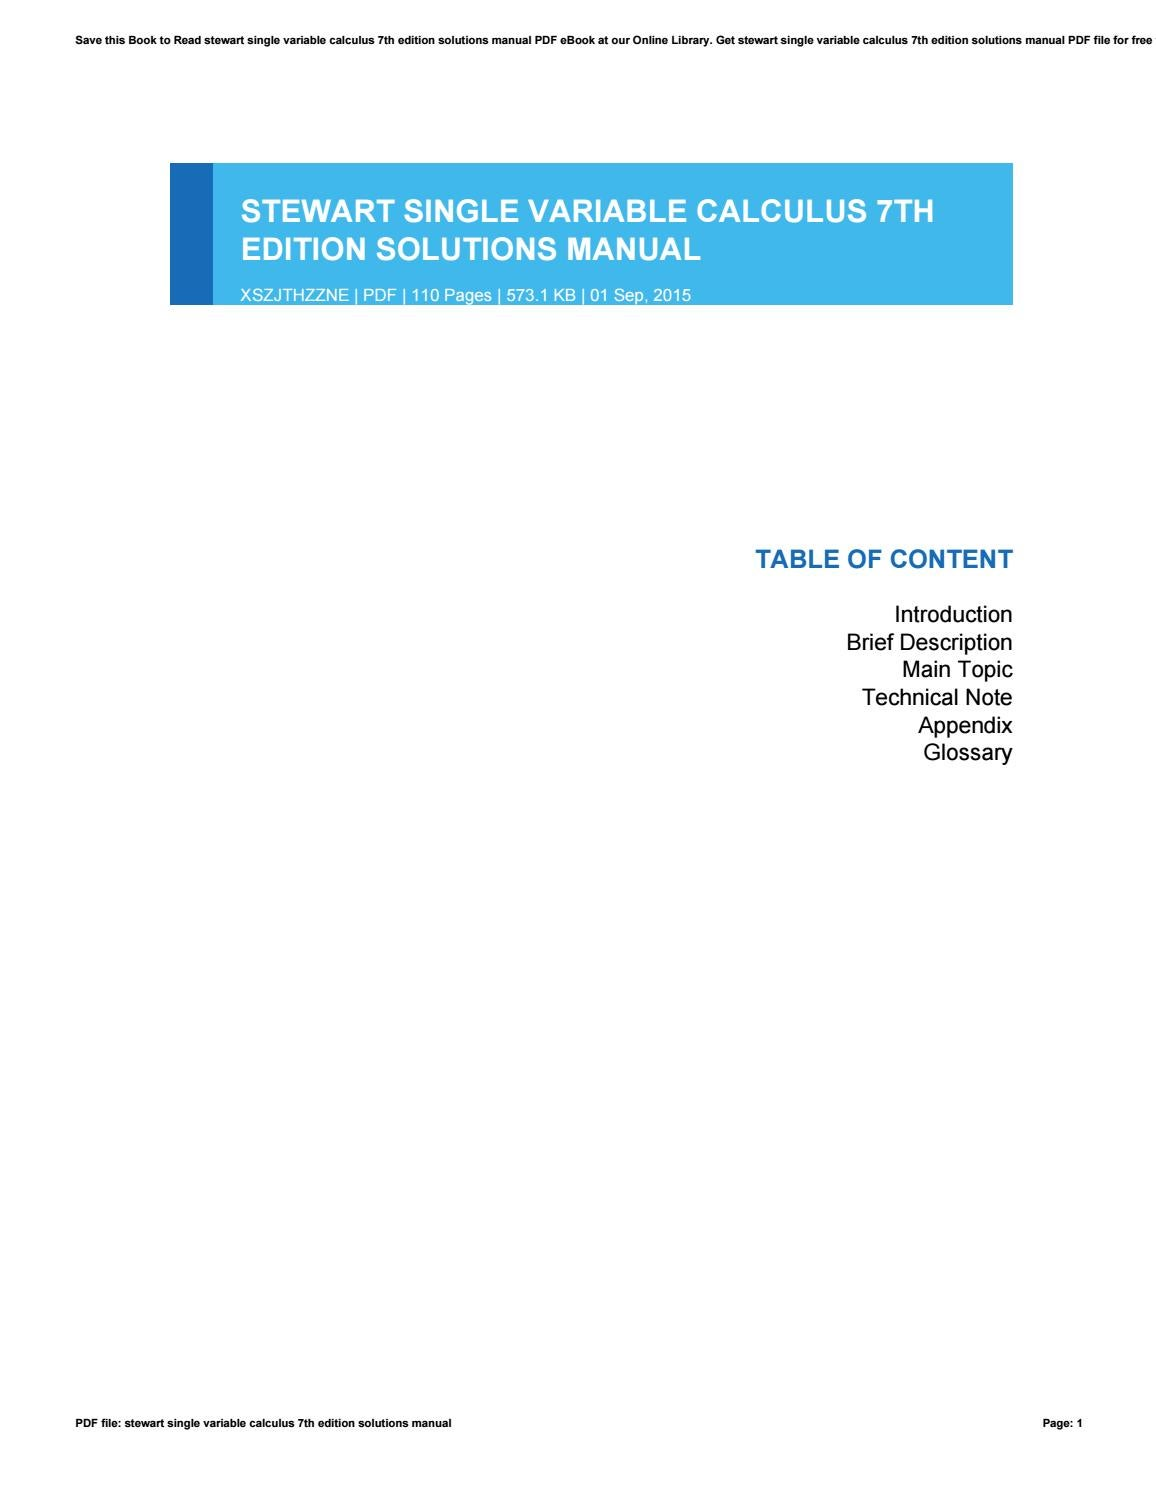 Stewart single variable calculus 7th edition solutions manual by  ClarenceDunn3399 - issuu